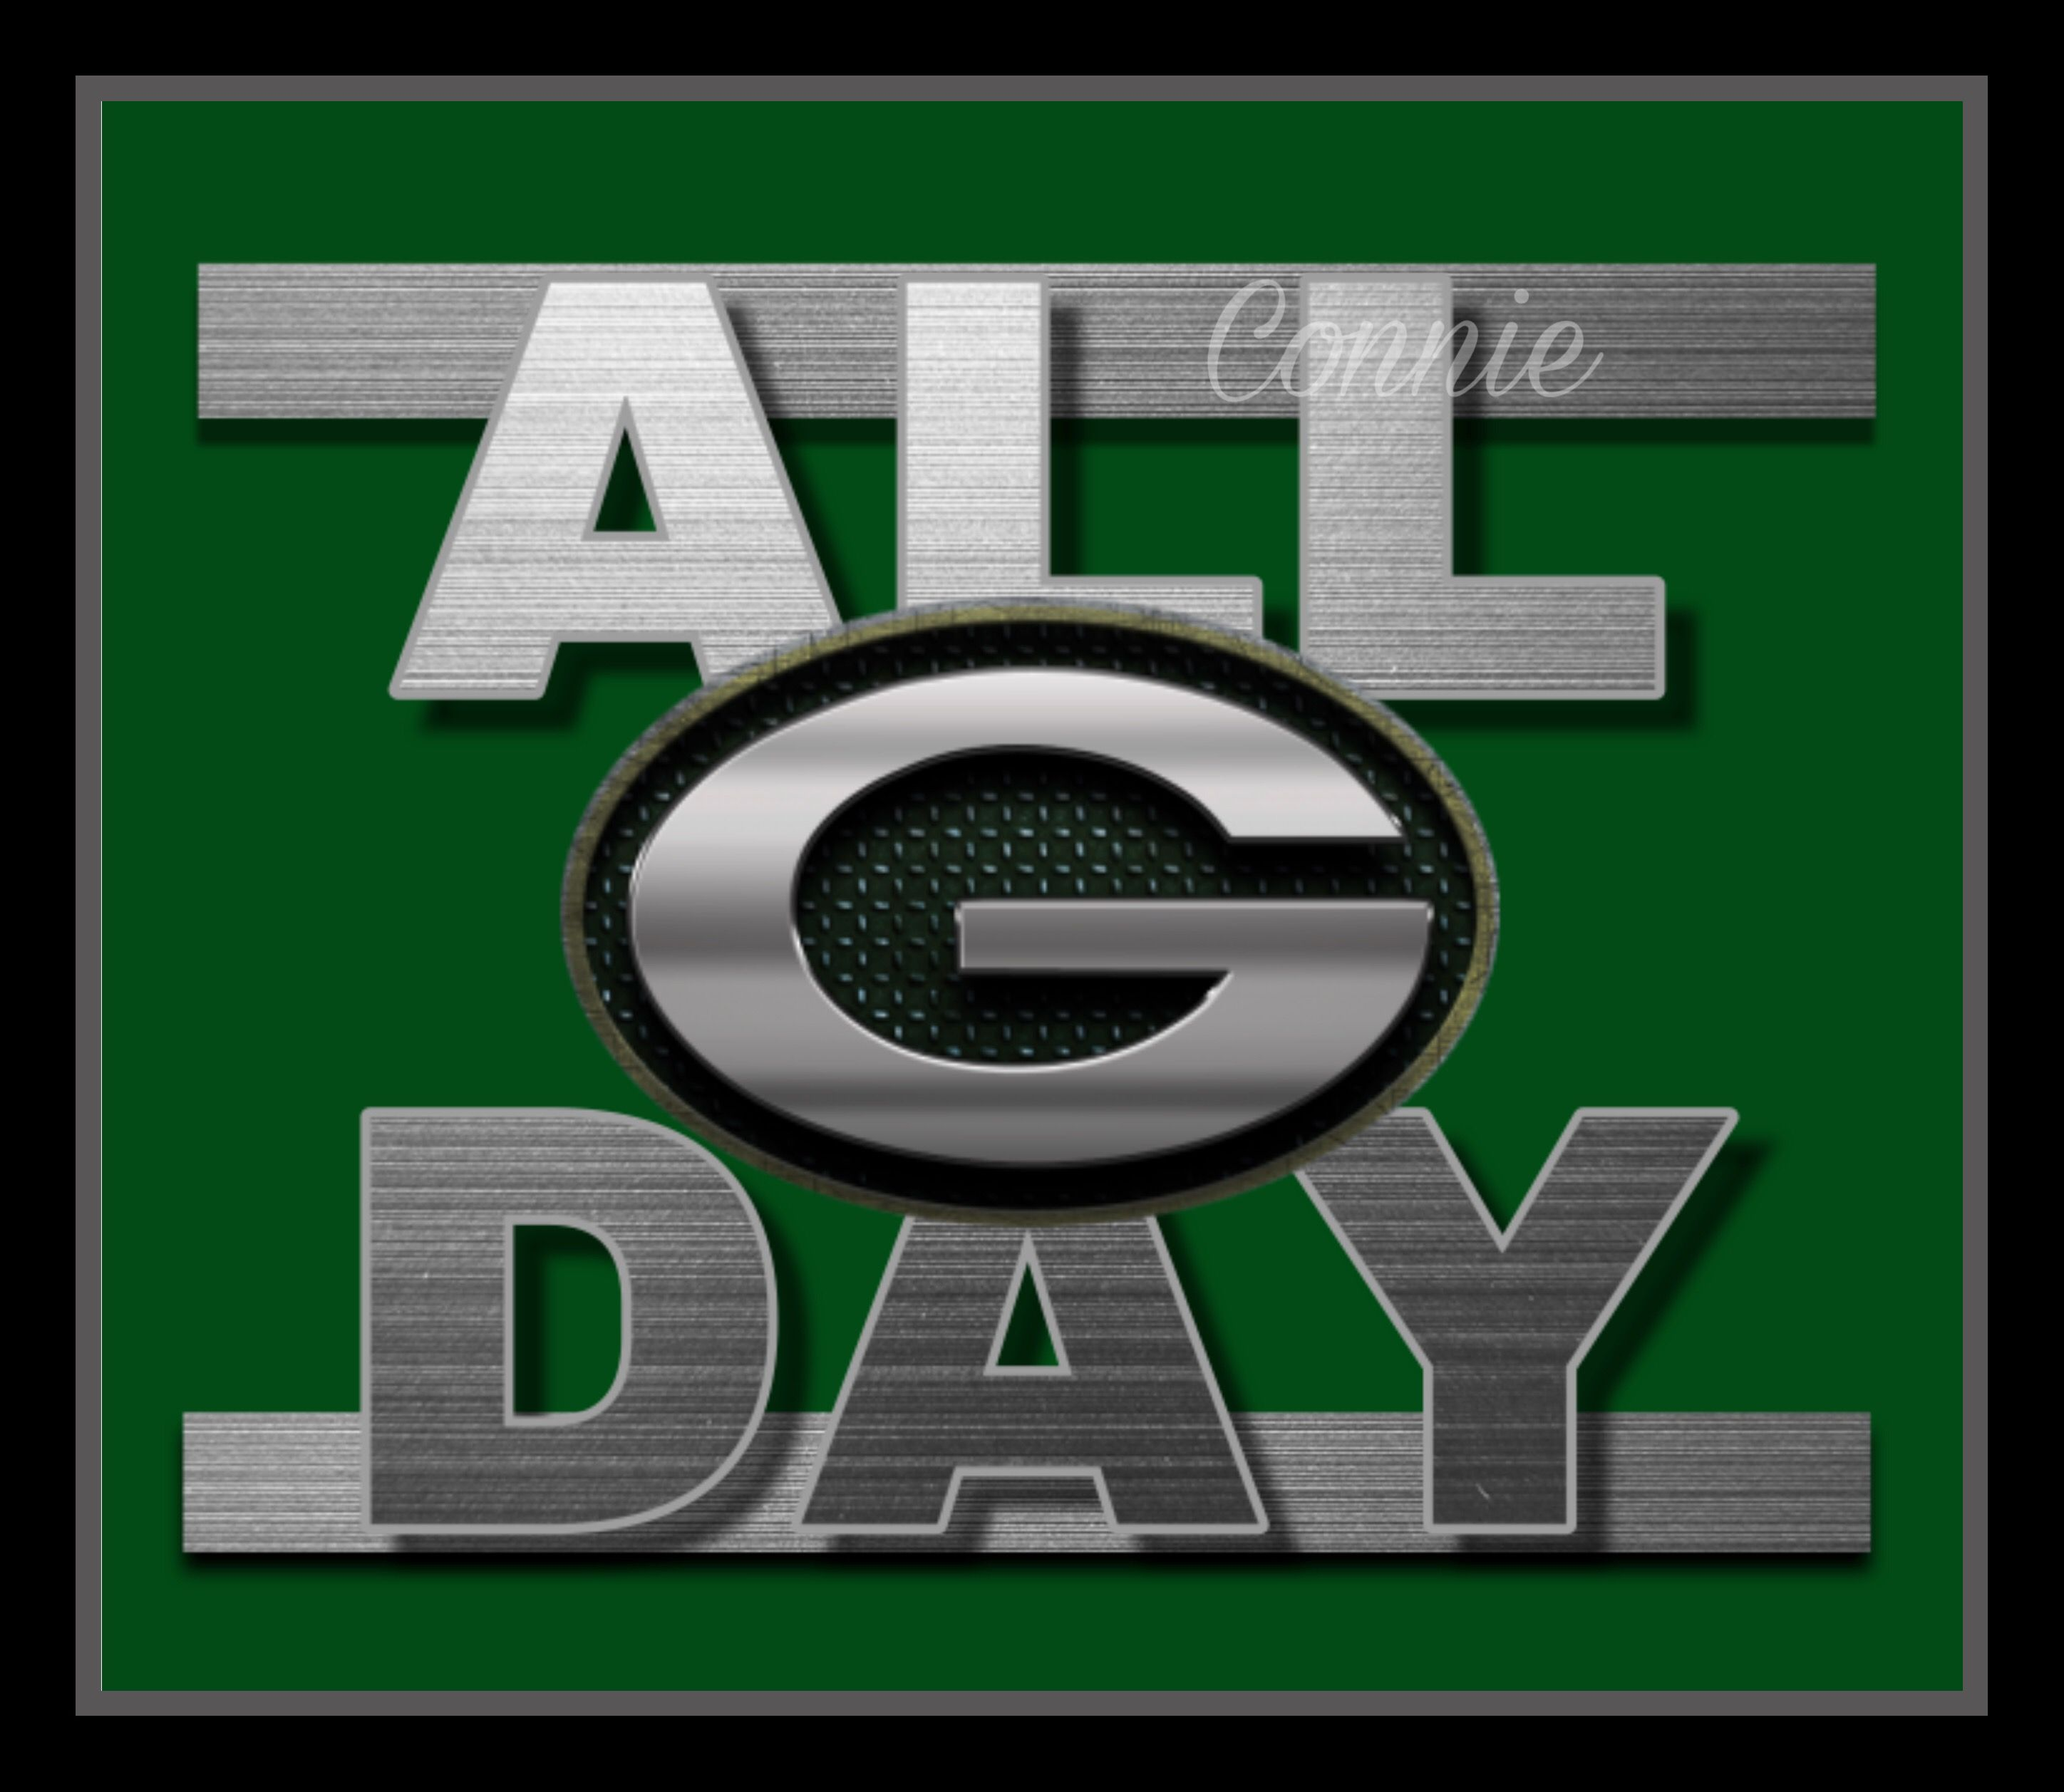 Green Bay All Day Green Bay Packers Fans Green Bay Packers Green Bay